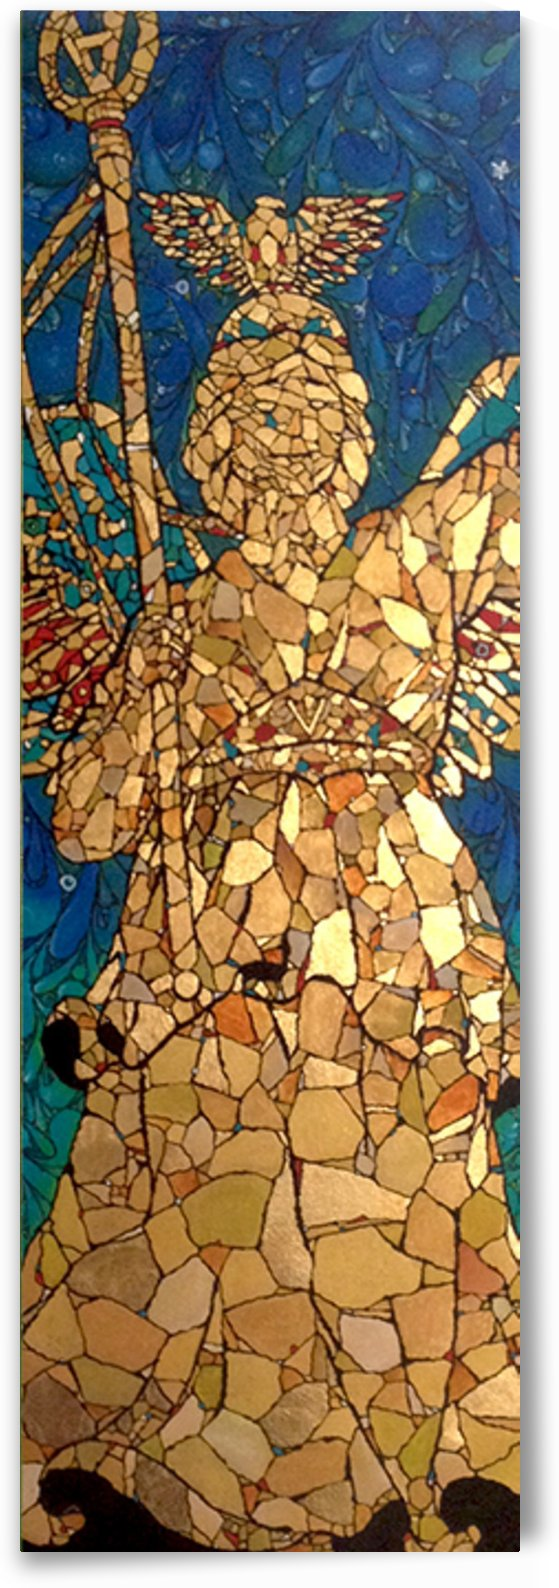 The Guardian Gold Angel by Ari Glass